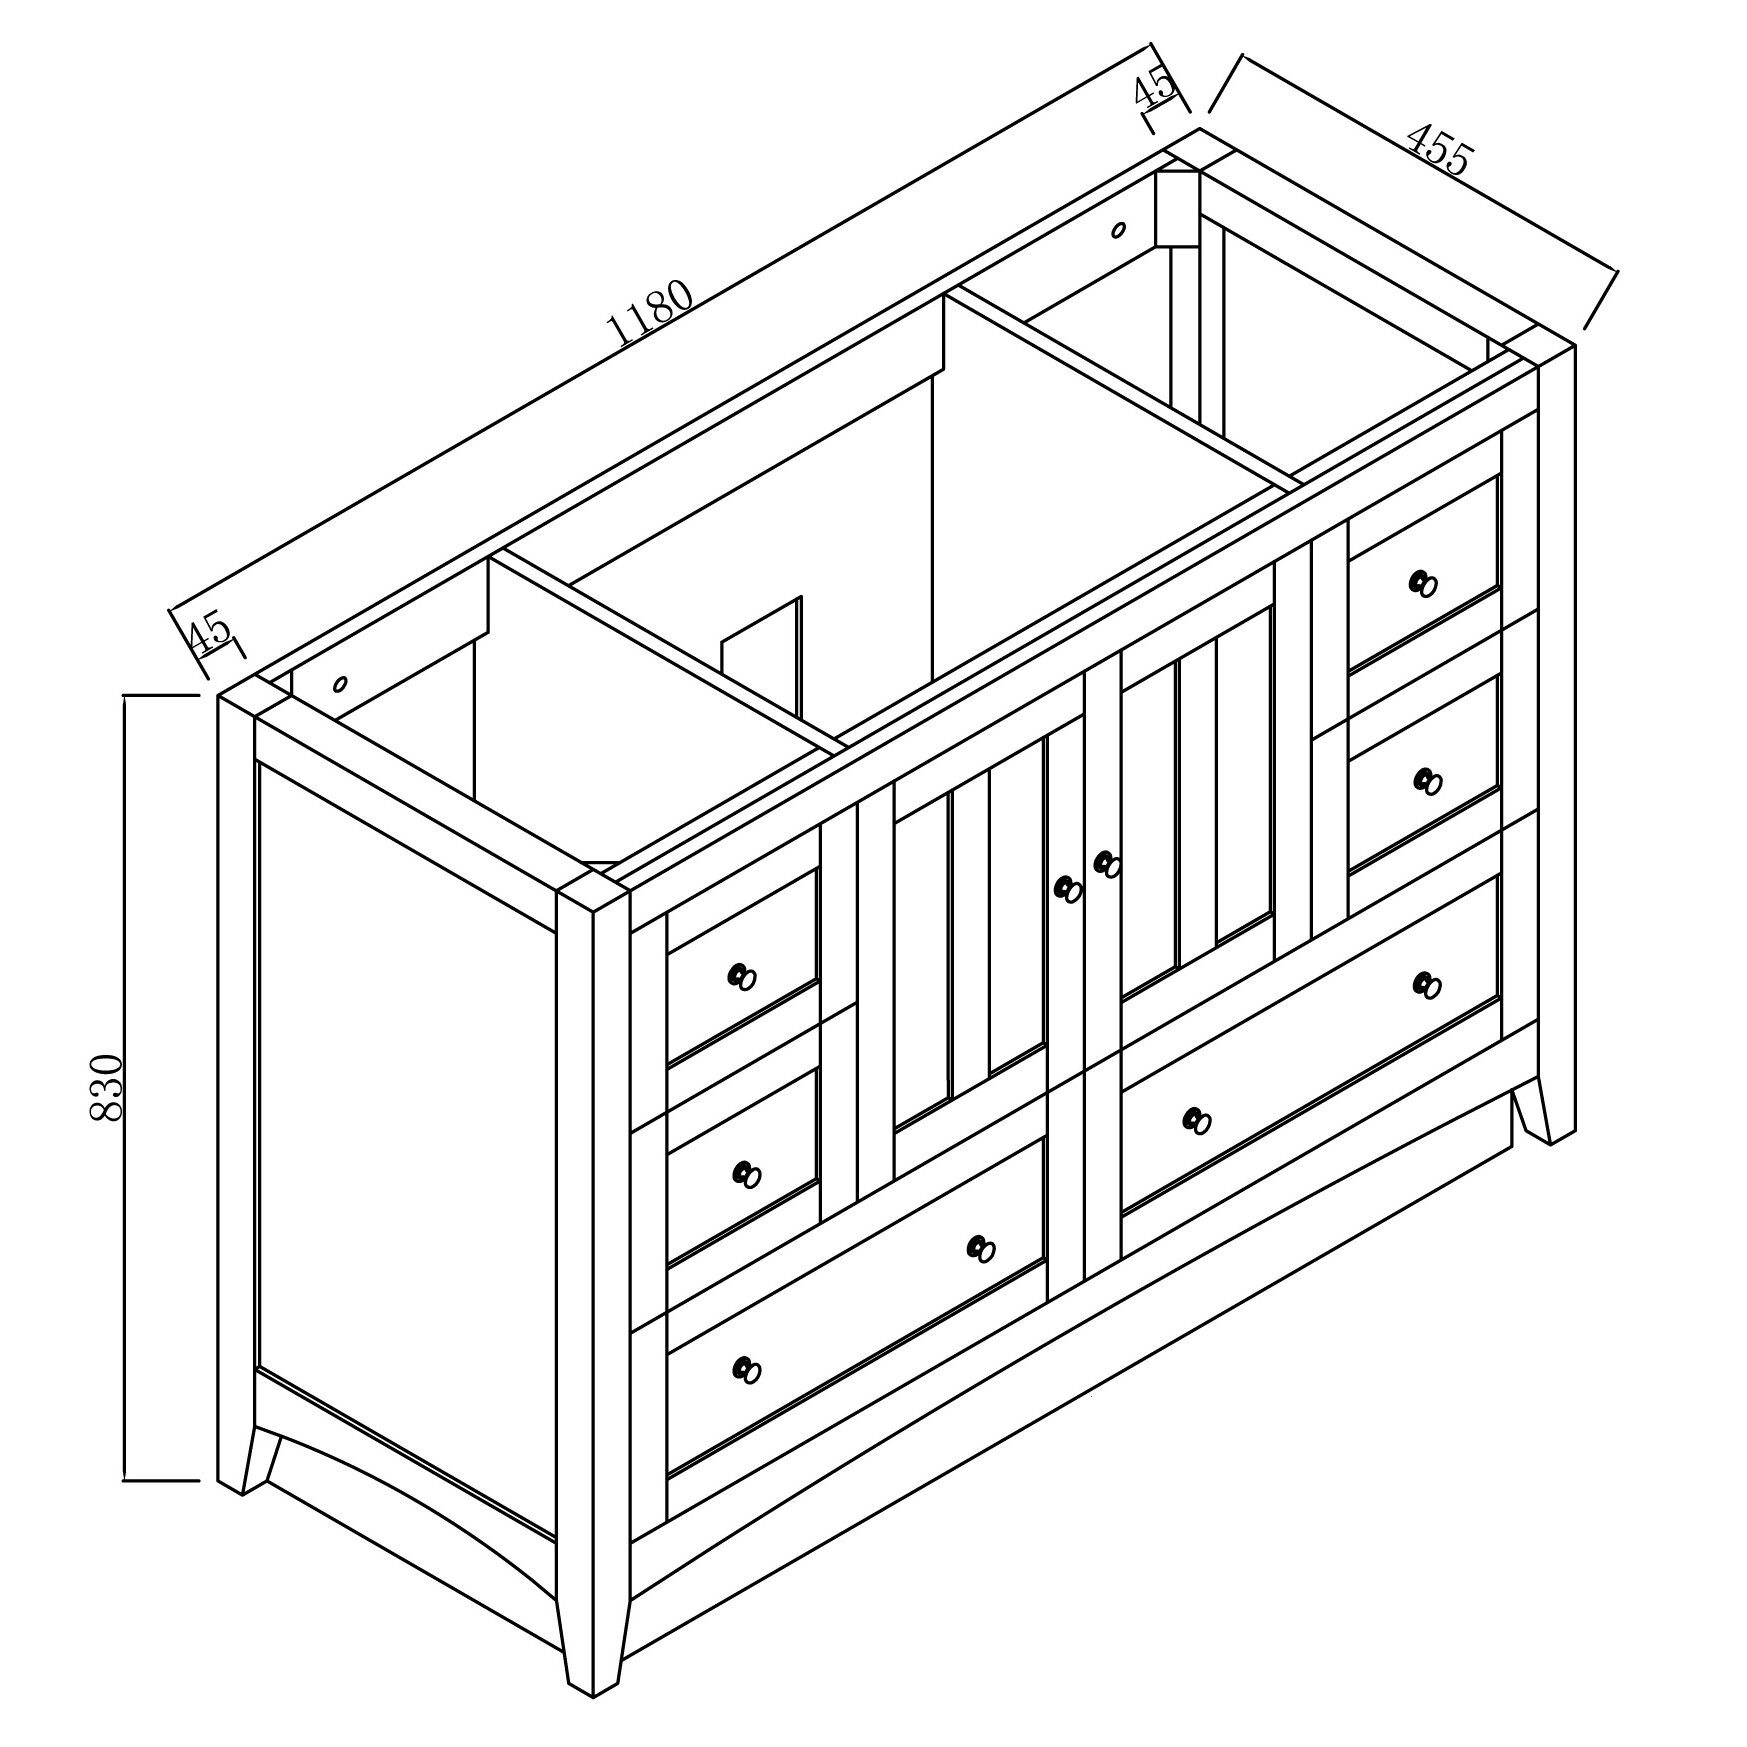 48 In Bathroom Vanity With Top. Image Result For 48 In Bathroom Vanity With Top